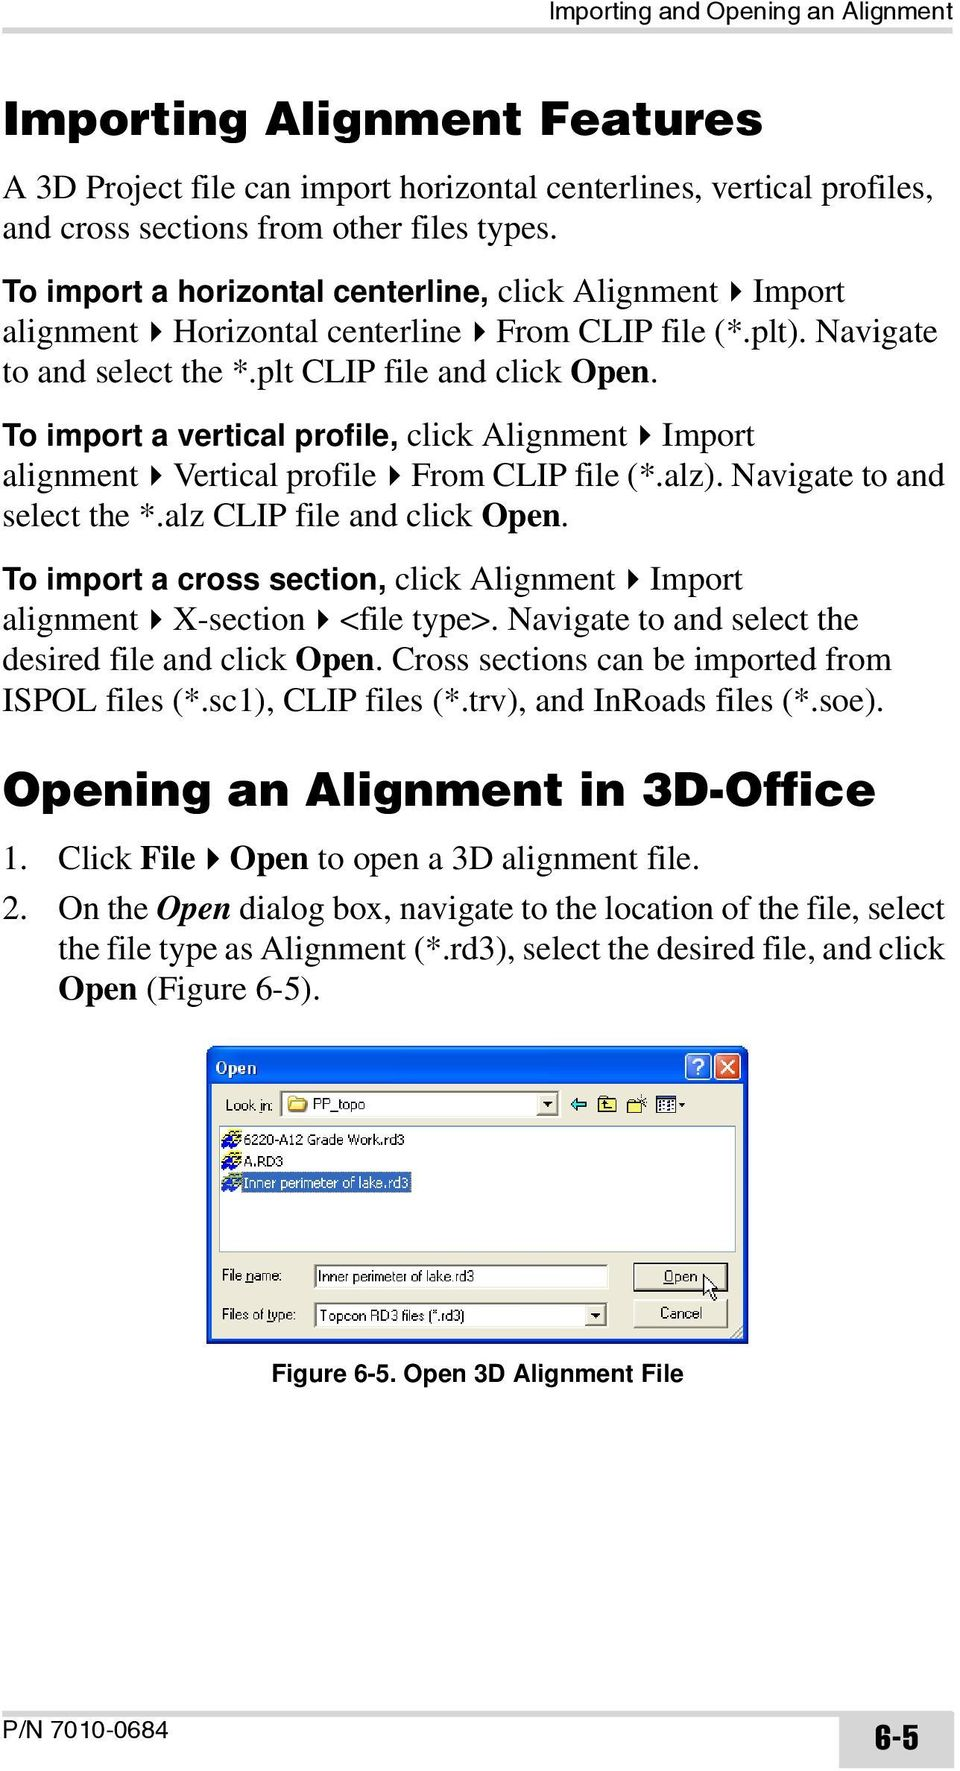 To import a vertical profile, click Alignment Import alignment Vertical profile From CLIP file (*.alz). Navigate to and select the *.alz CLIP file and click Open.